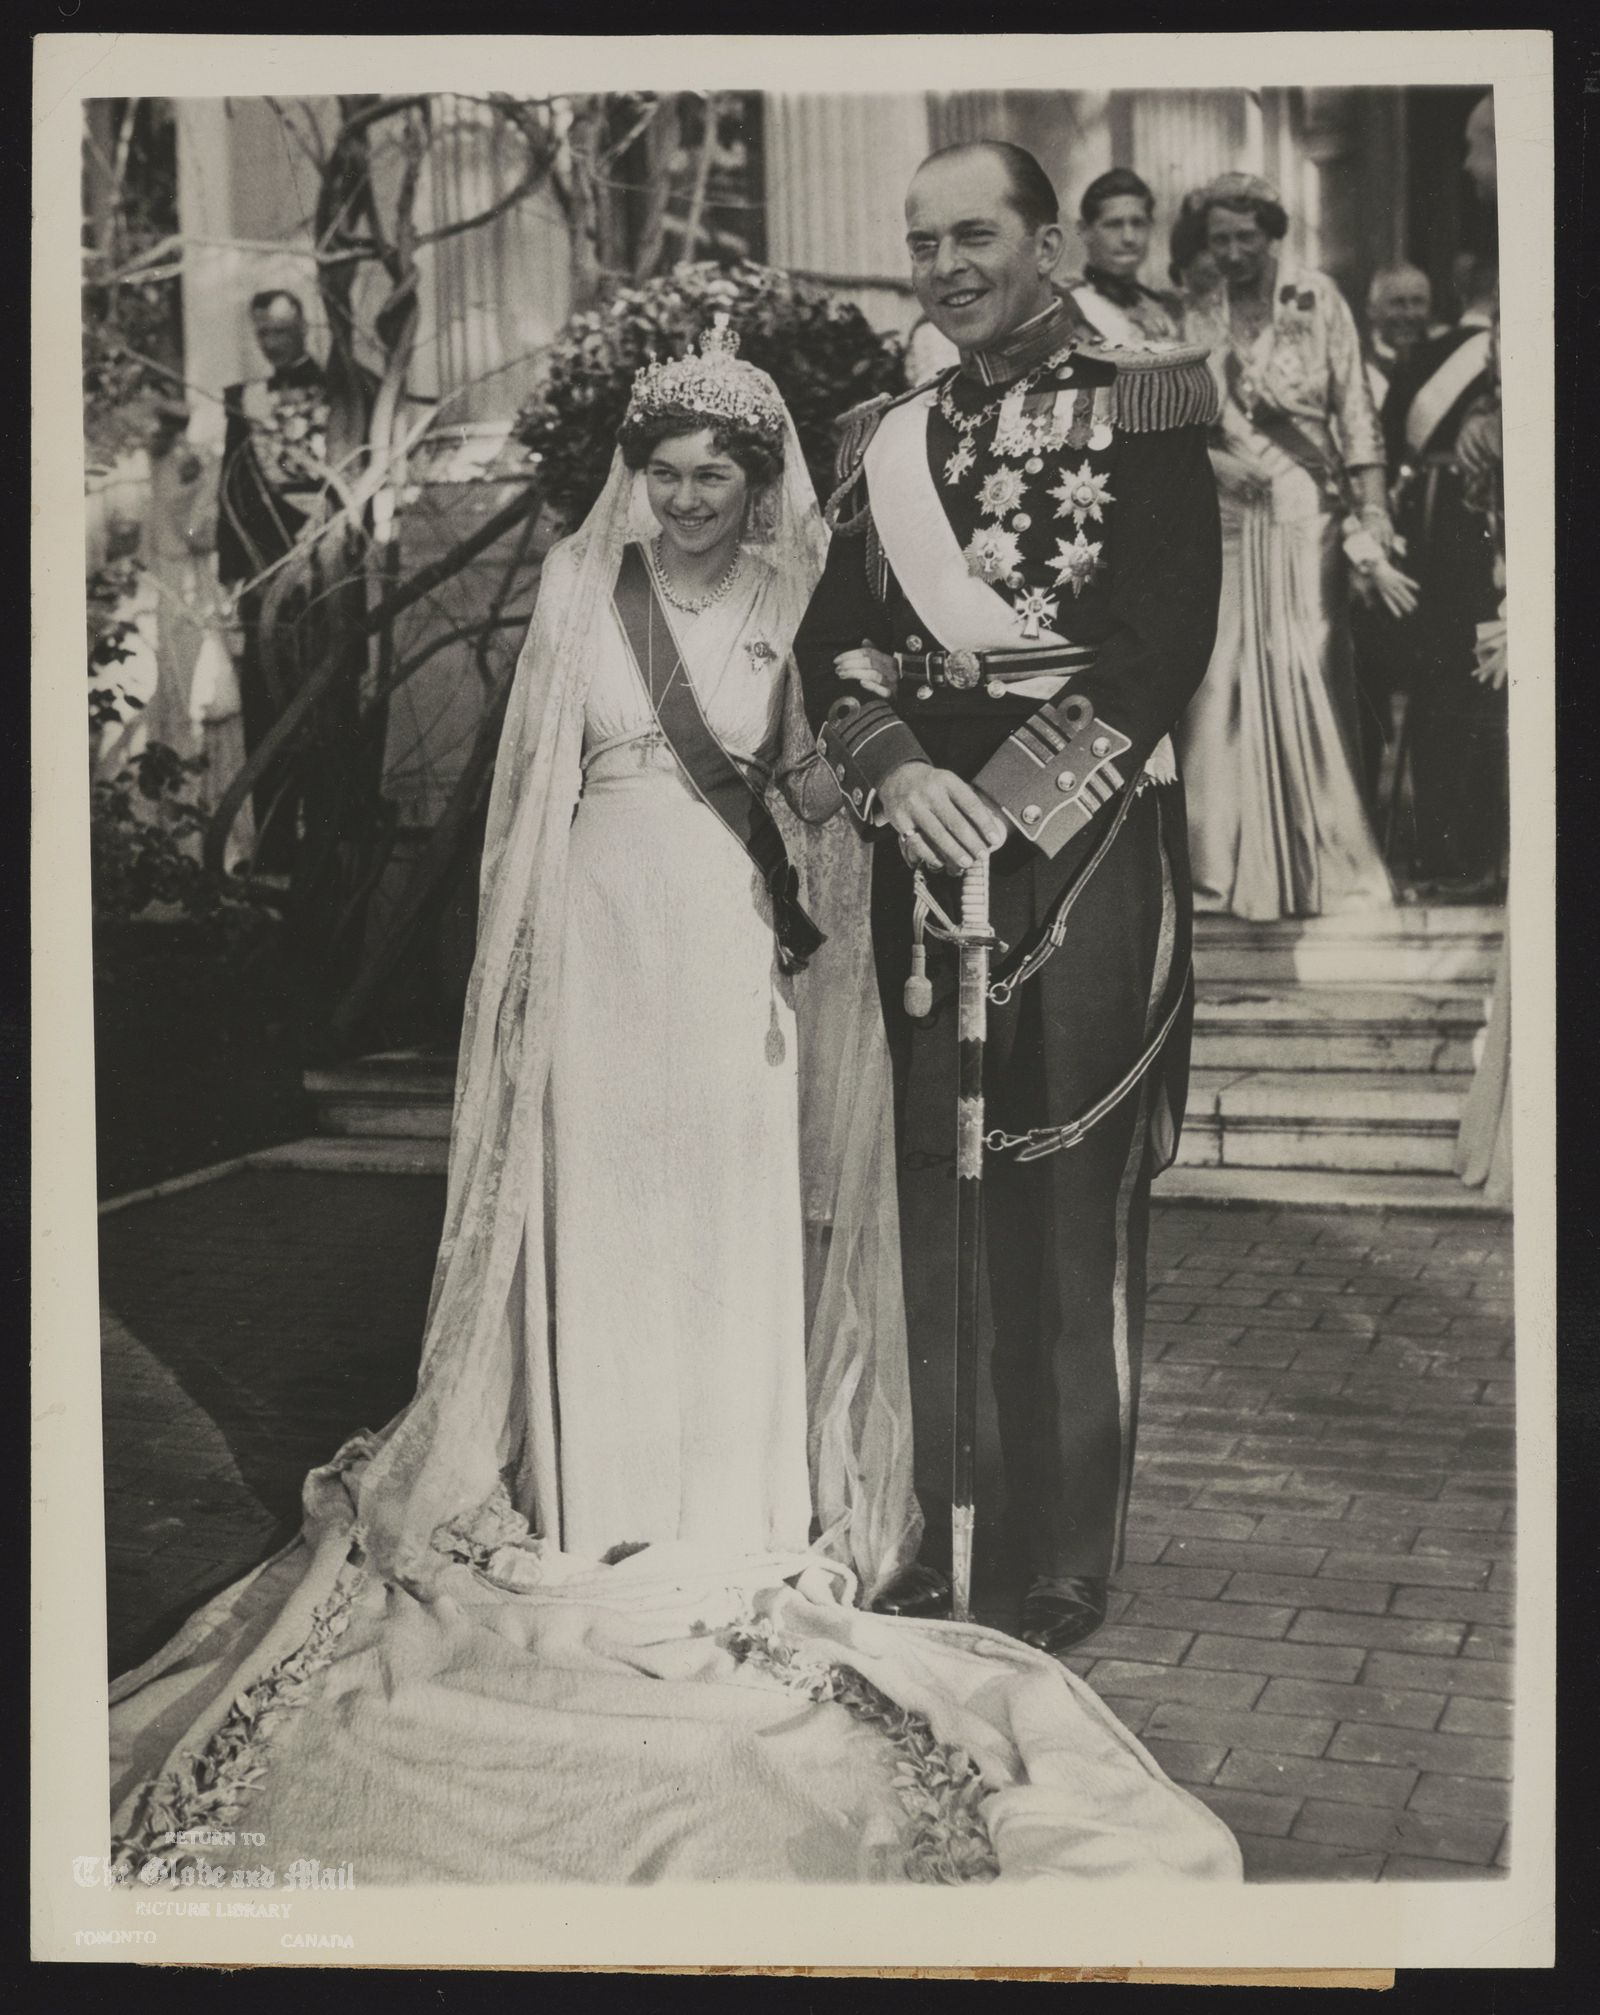 25605 ASSOCIATED PRESS PHOTO FROM NEW YORK CAUTION: USE CREDIT EUROPE'S LATEST ROYAL WEDDING SHOWN OUTSIDE THE ROYAL PALACE IN ATHENS, GREECE, JANUARY 9, AFTER THE CEREMONY ARE CROWN PRINCE PAUL OF GREECE AND HIS BRIDE, PRINCESS FREDERIKA LUISE OF BRUNSWICK, A GRANDDAUGHTER OF THE EX-KAISER OF GERMANY AND A GREAT-GREAT-GRANDDAUGHTER OF QUEEN VICTORIA OF ENGLAND. THE WEDDING WAS ATTENDED BY MEMBERS OF MANY OF EUROPE'S ROYAL FAMILIES. ASSOCIATED PRESS PHOTO 1/19/38 OR 10:50AEST LON A B C HAVANA HARTFORD MONTREAL 70